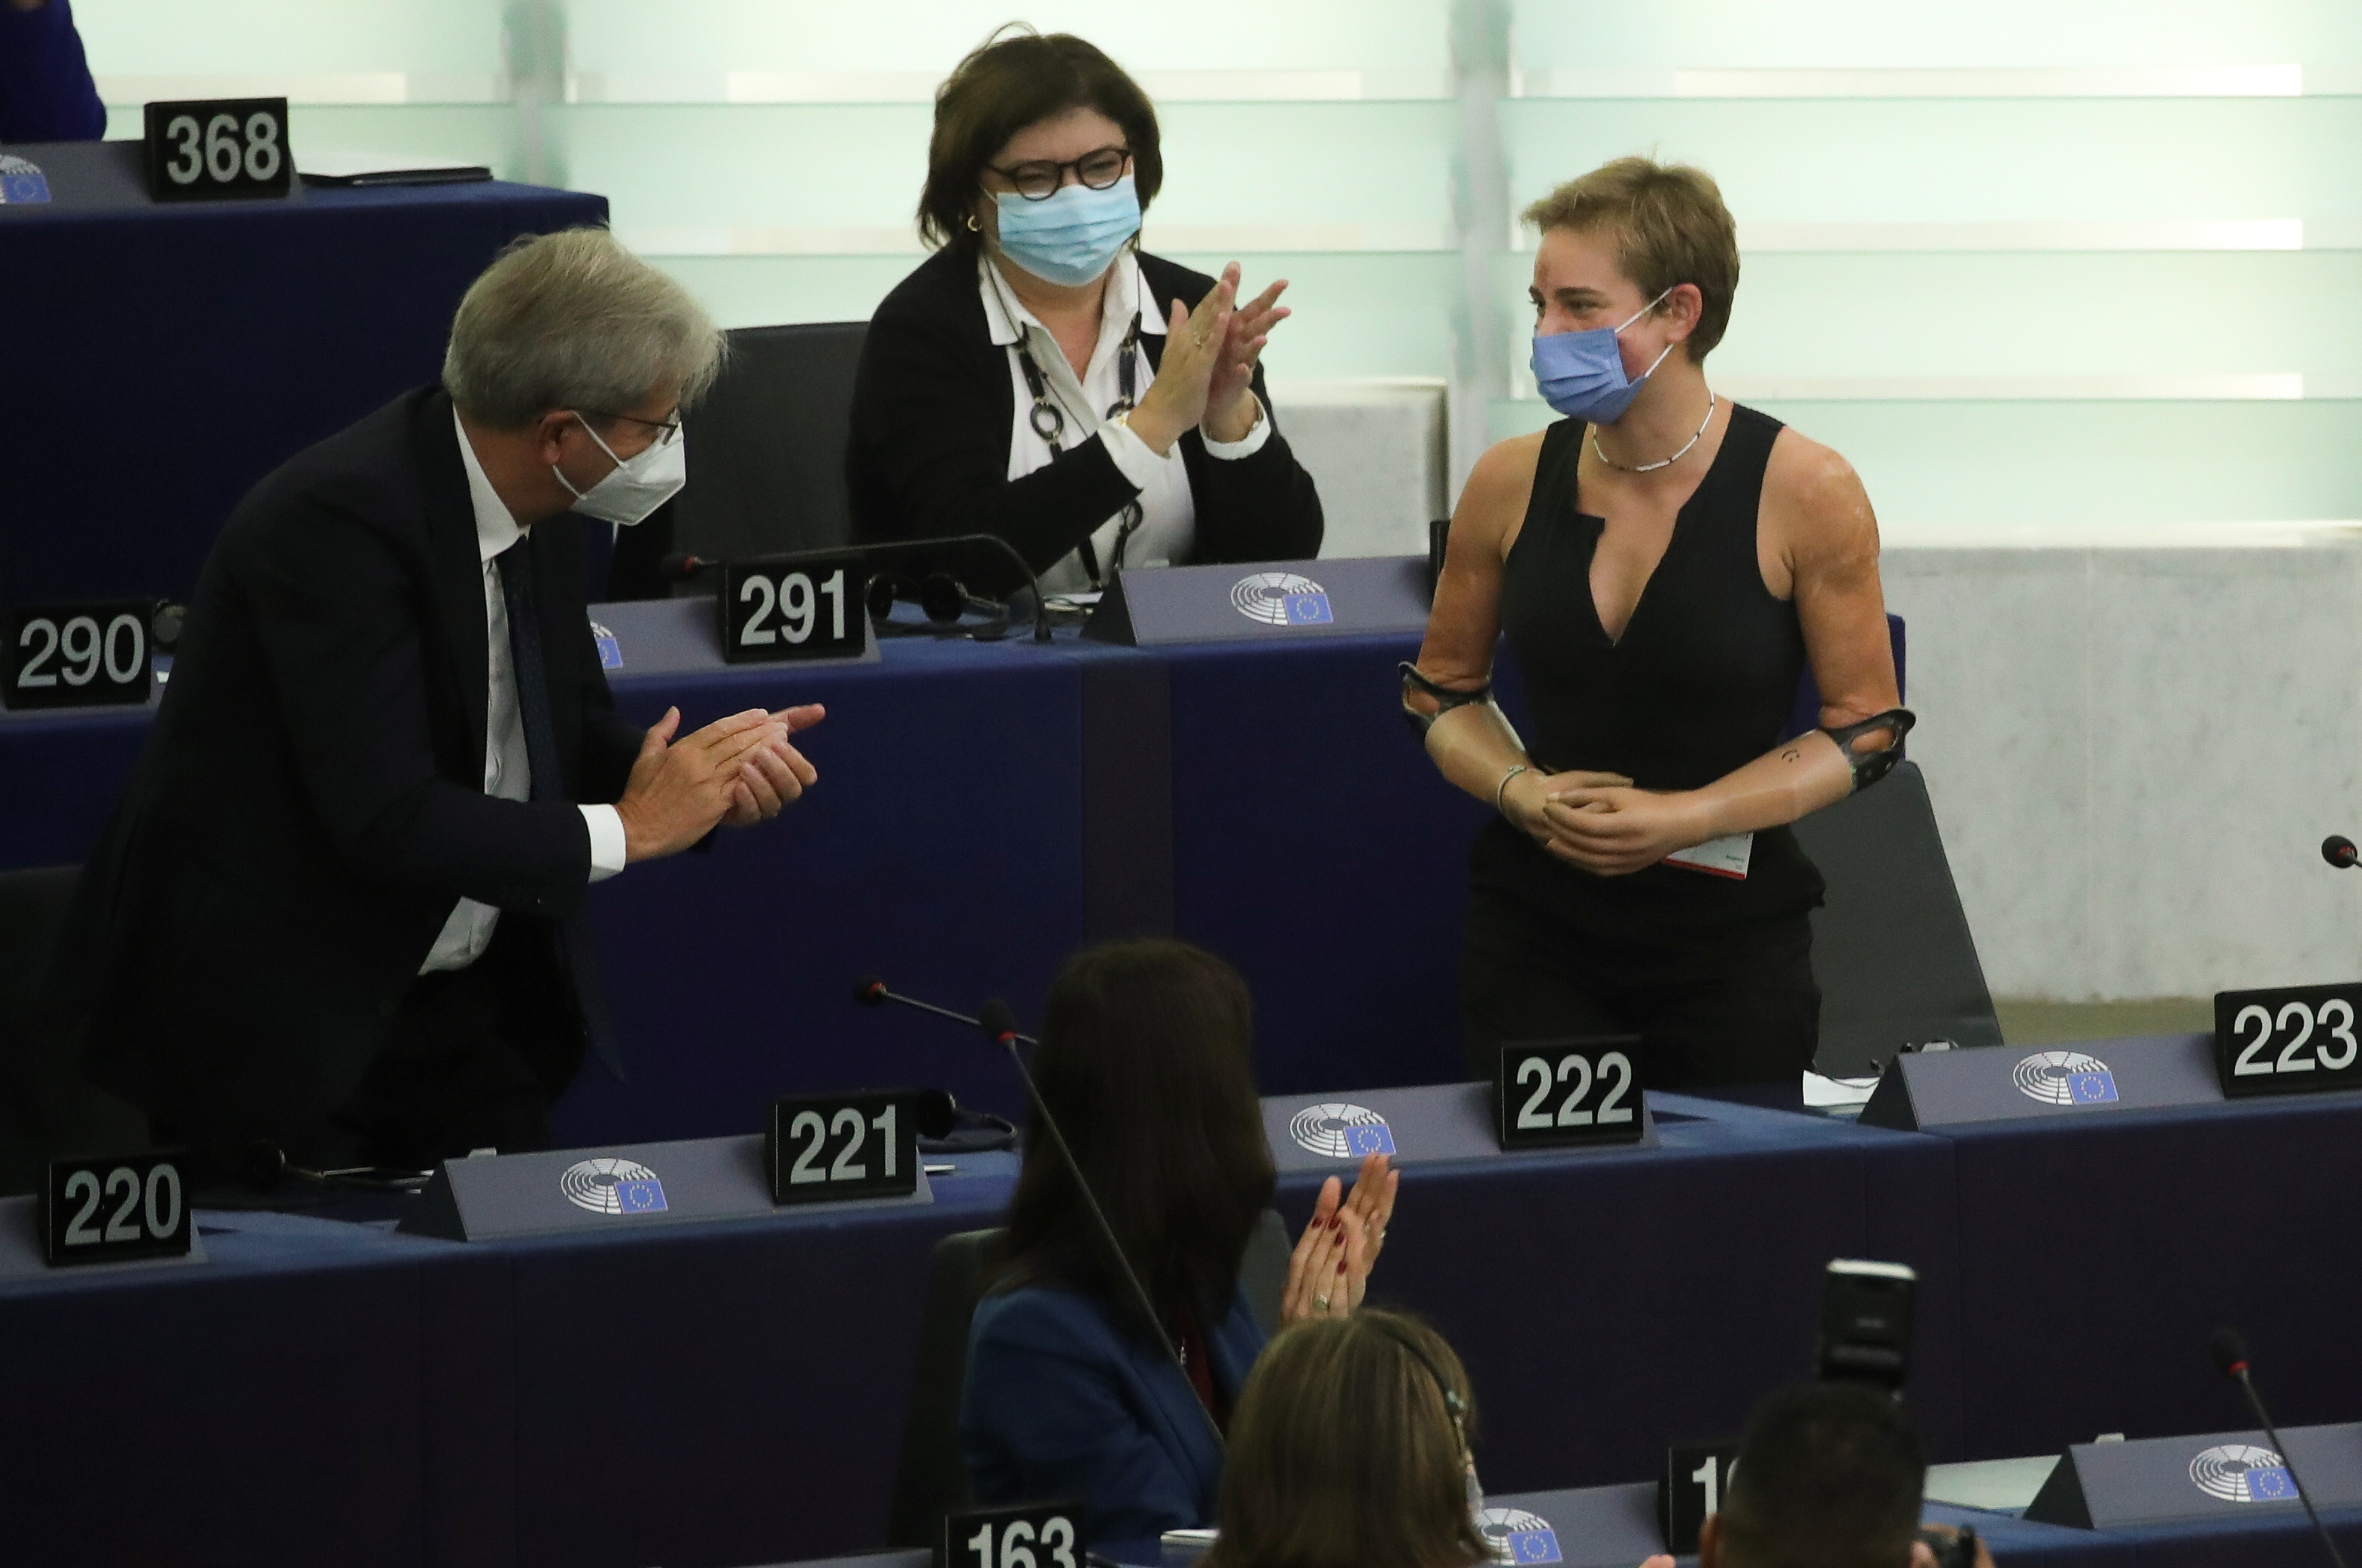 European Economy Commissioner Paolo Gentiloni and European Parliament members applaud Tokyo 2020 Paralympic gold medallist Beatrice Vio as European Commission President Ursula von der Leyen (not pictured) delivers a speech during a debate on